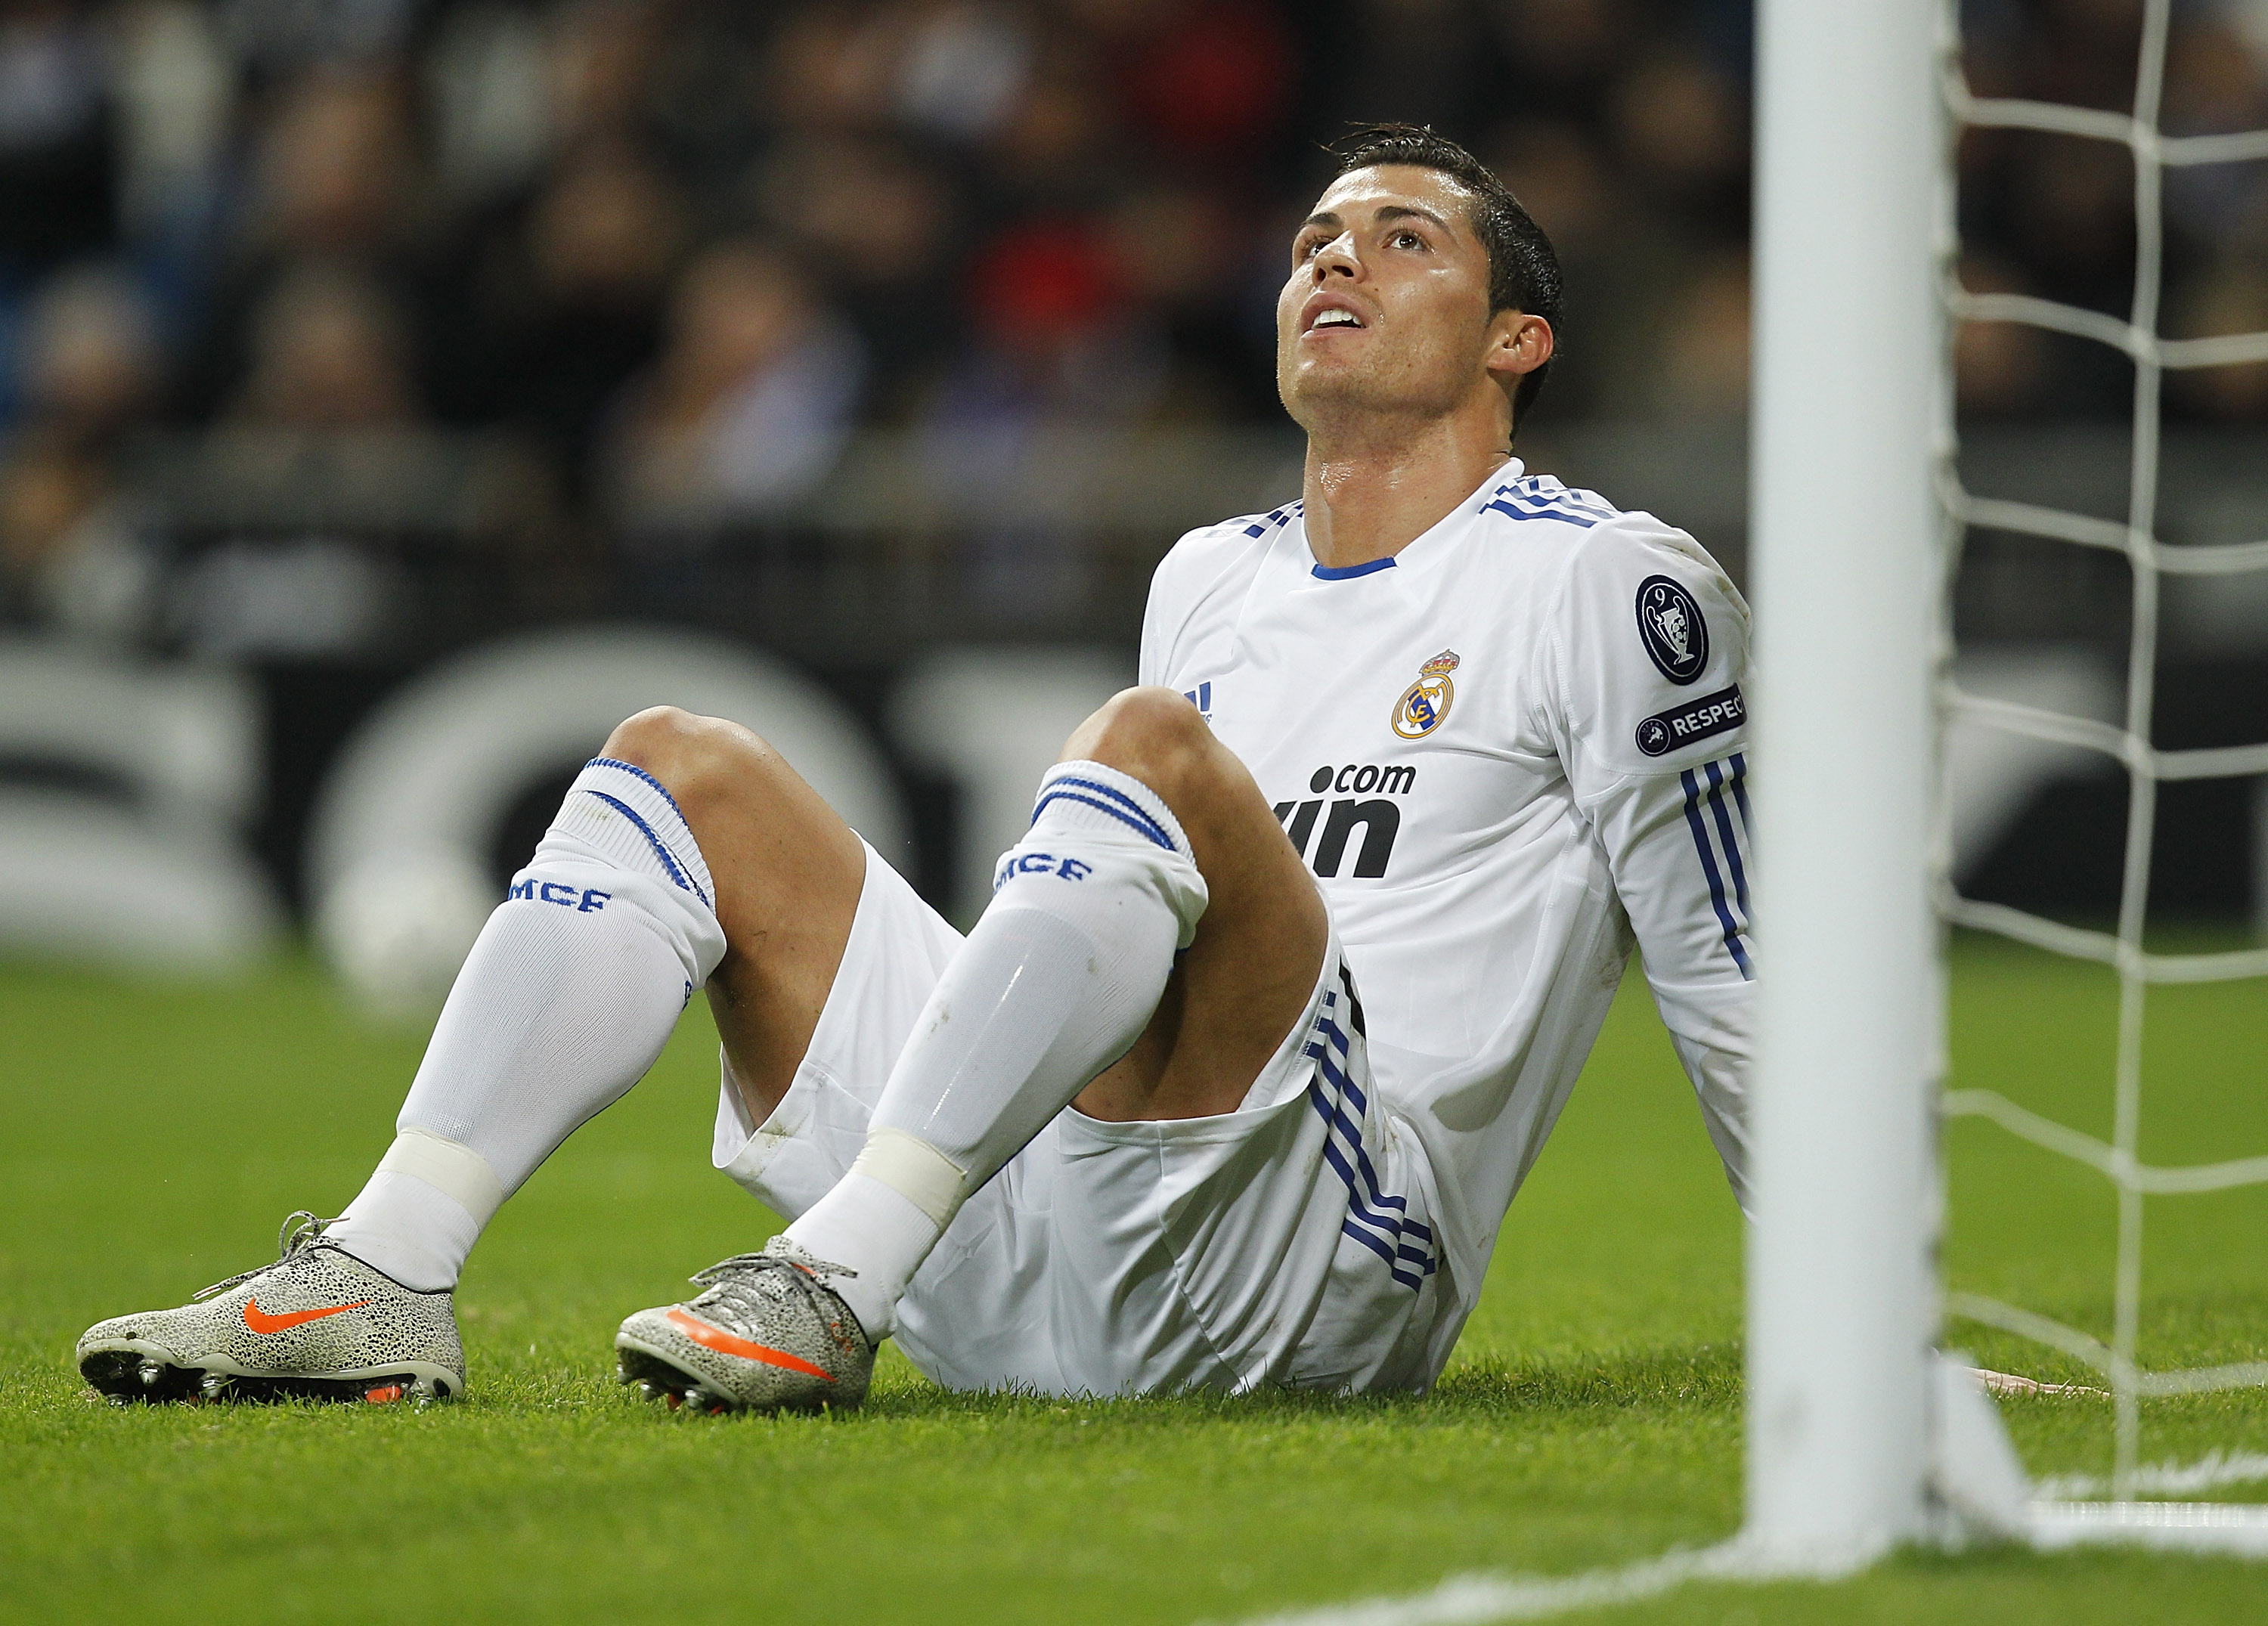 MADRID, SPAIN - DECEMBER 08:  Cristiano Ronaldo of Real Madrid reacts during the Champions League group G match between Real Madrid and AJ Auxerre at Estadio Santiago Bernabeu on December 8, 2010 in Madrid, Spain.  (Photo by Angel Martinez/Getty Images)